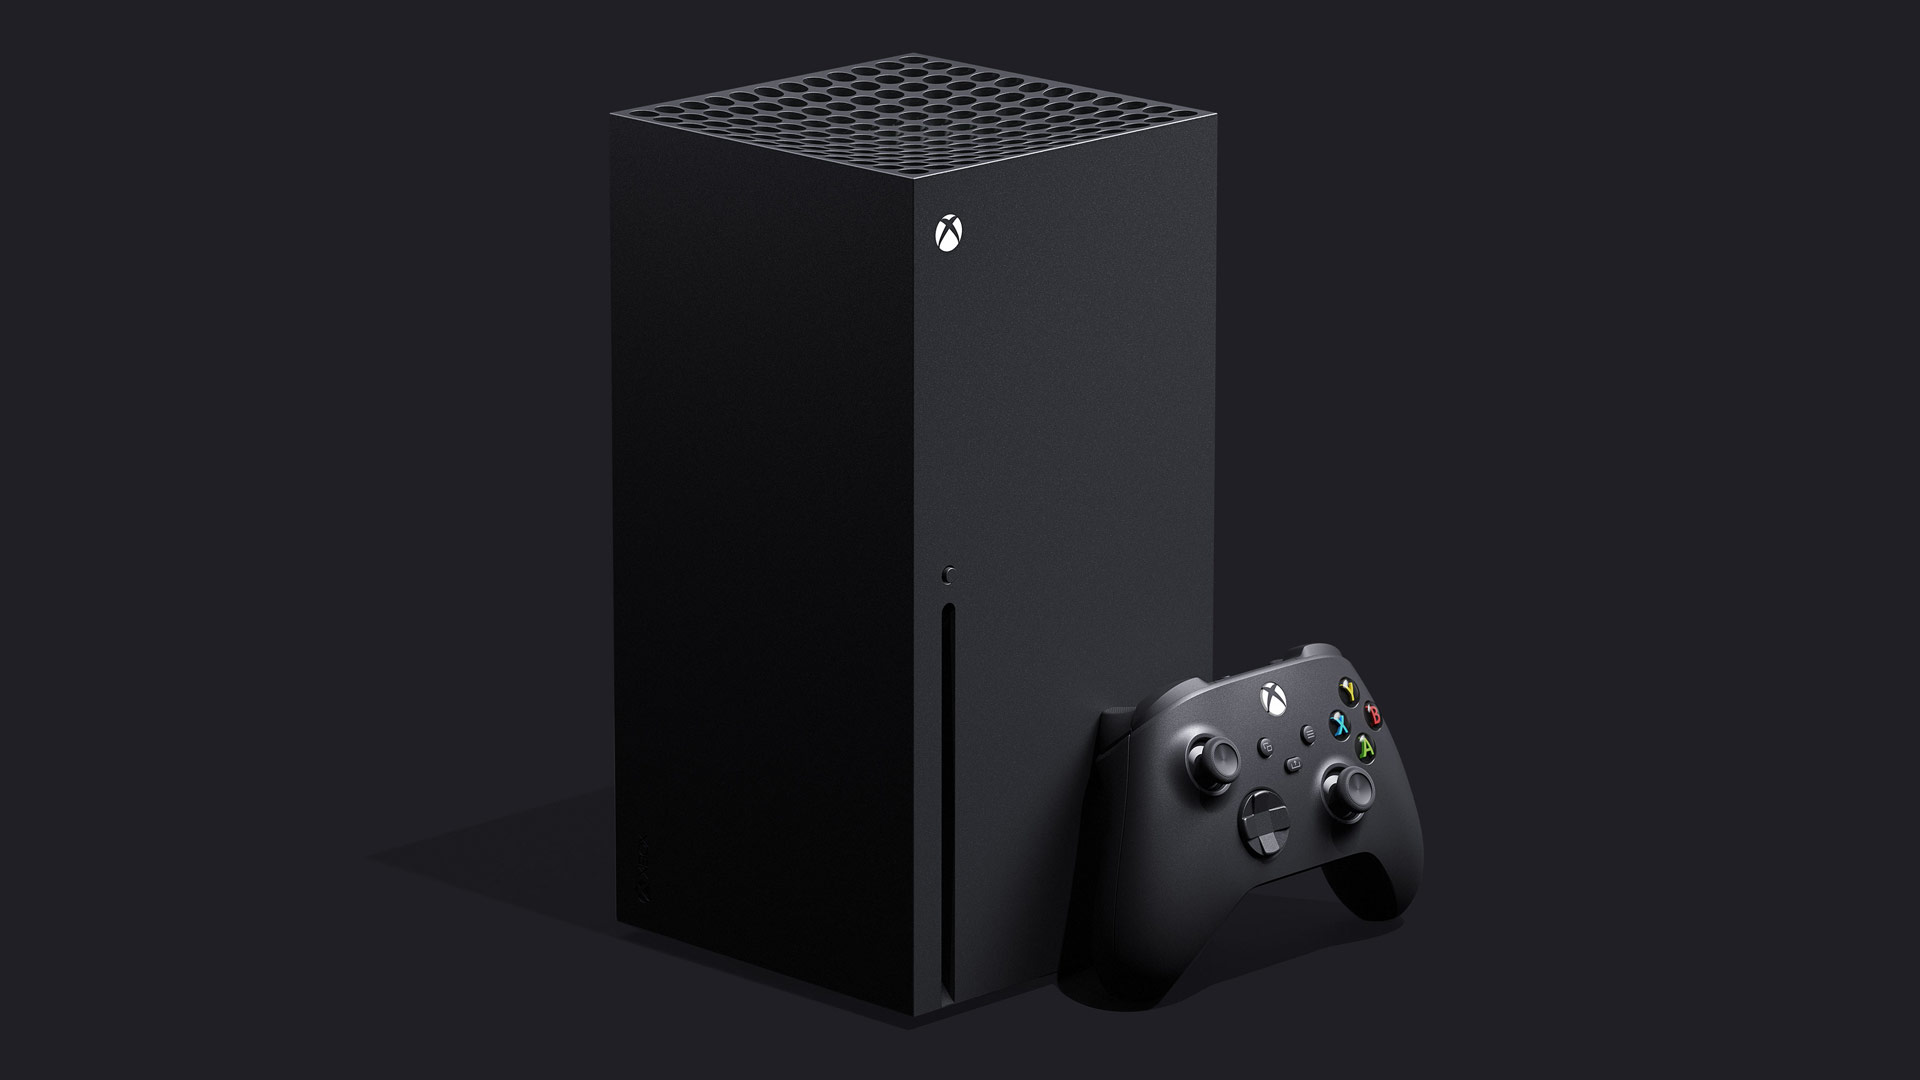 What price were you expecting for the Xbox Series X? screenshot